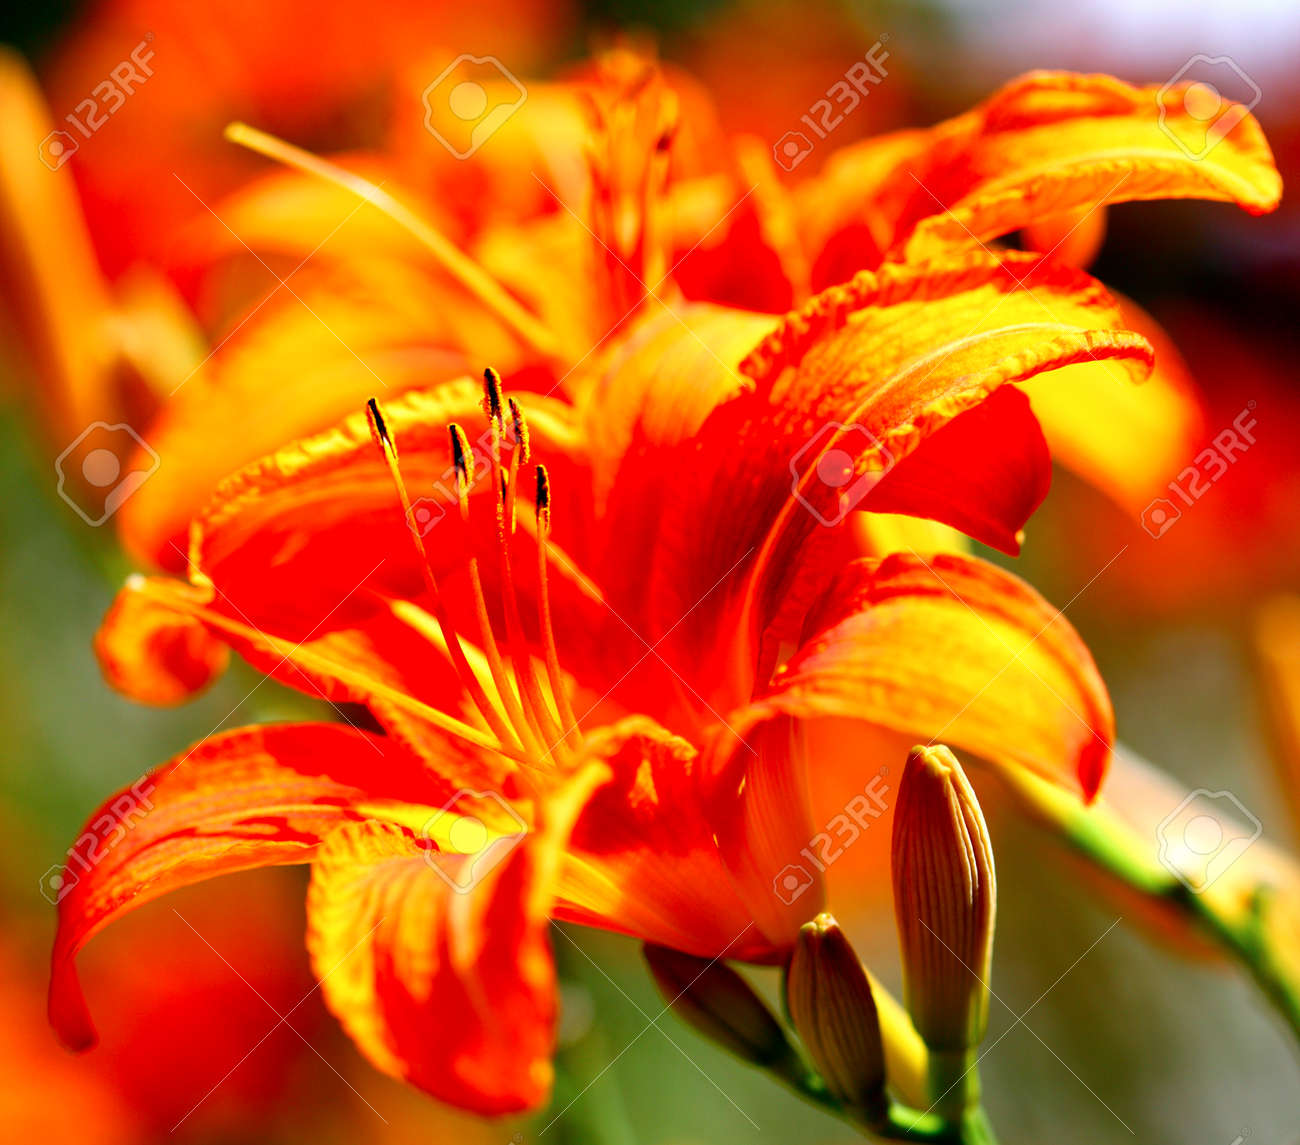 Orange Lily Flowers Lilies In Garden Outdoor Stock Photo Picture